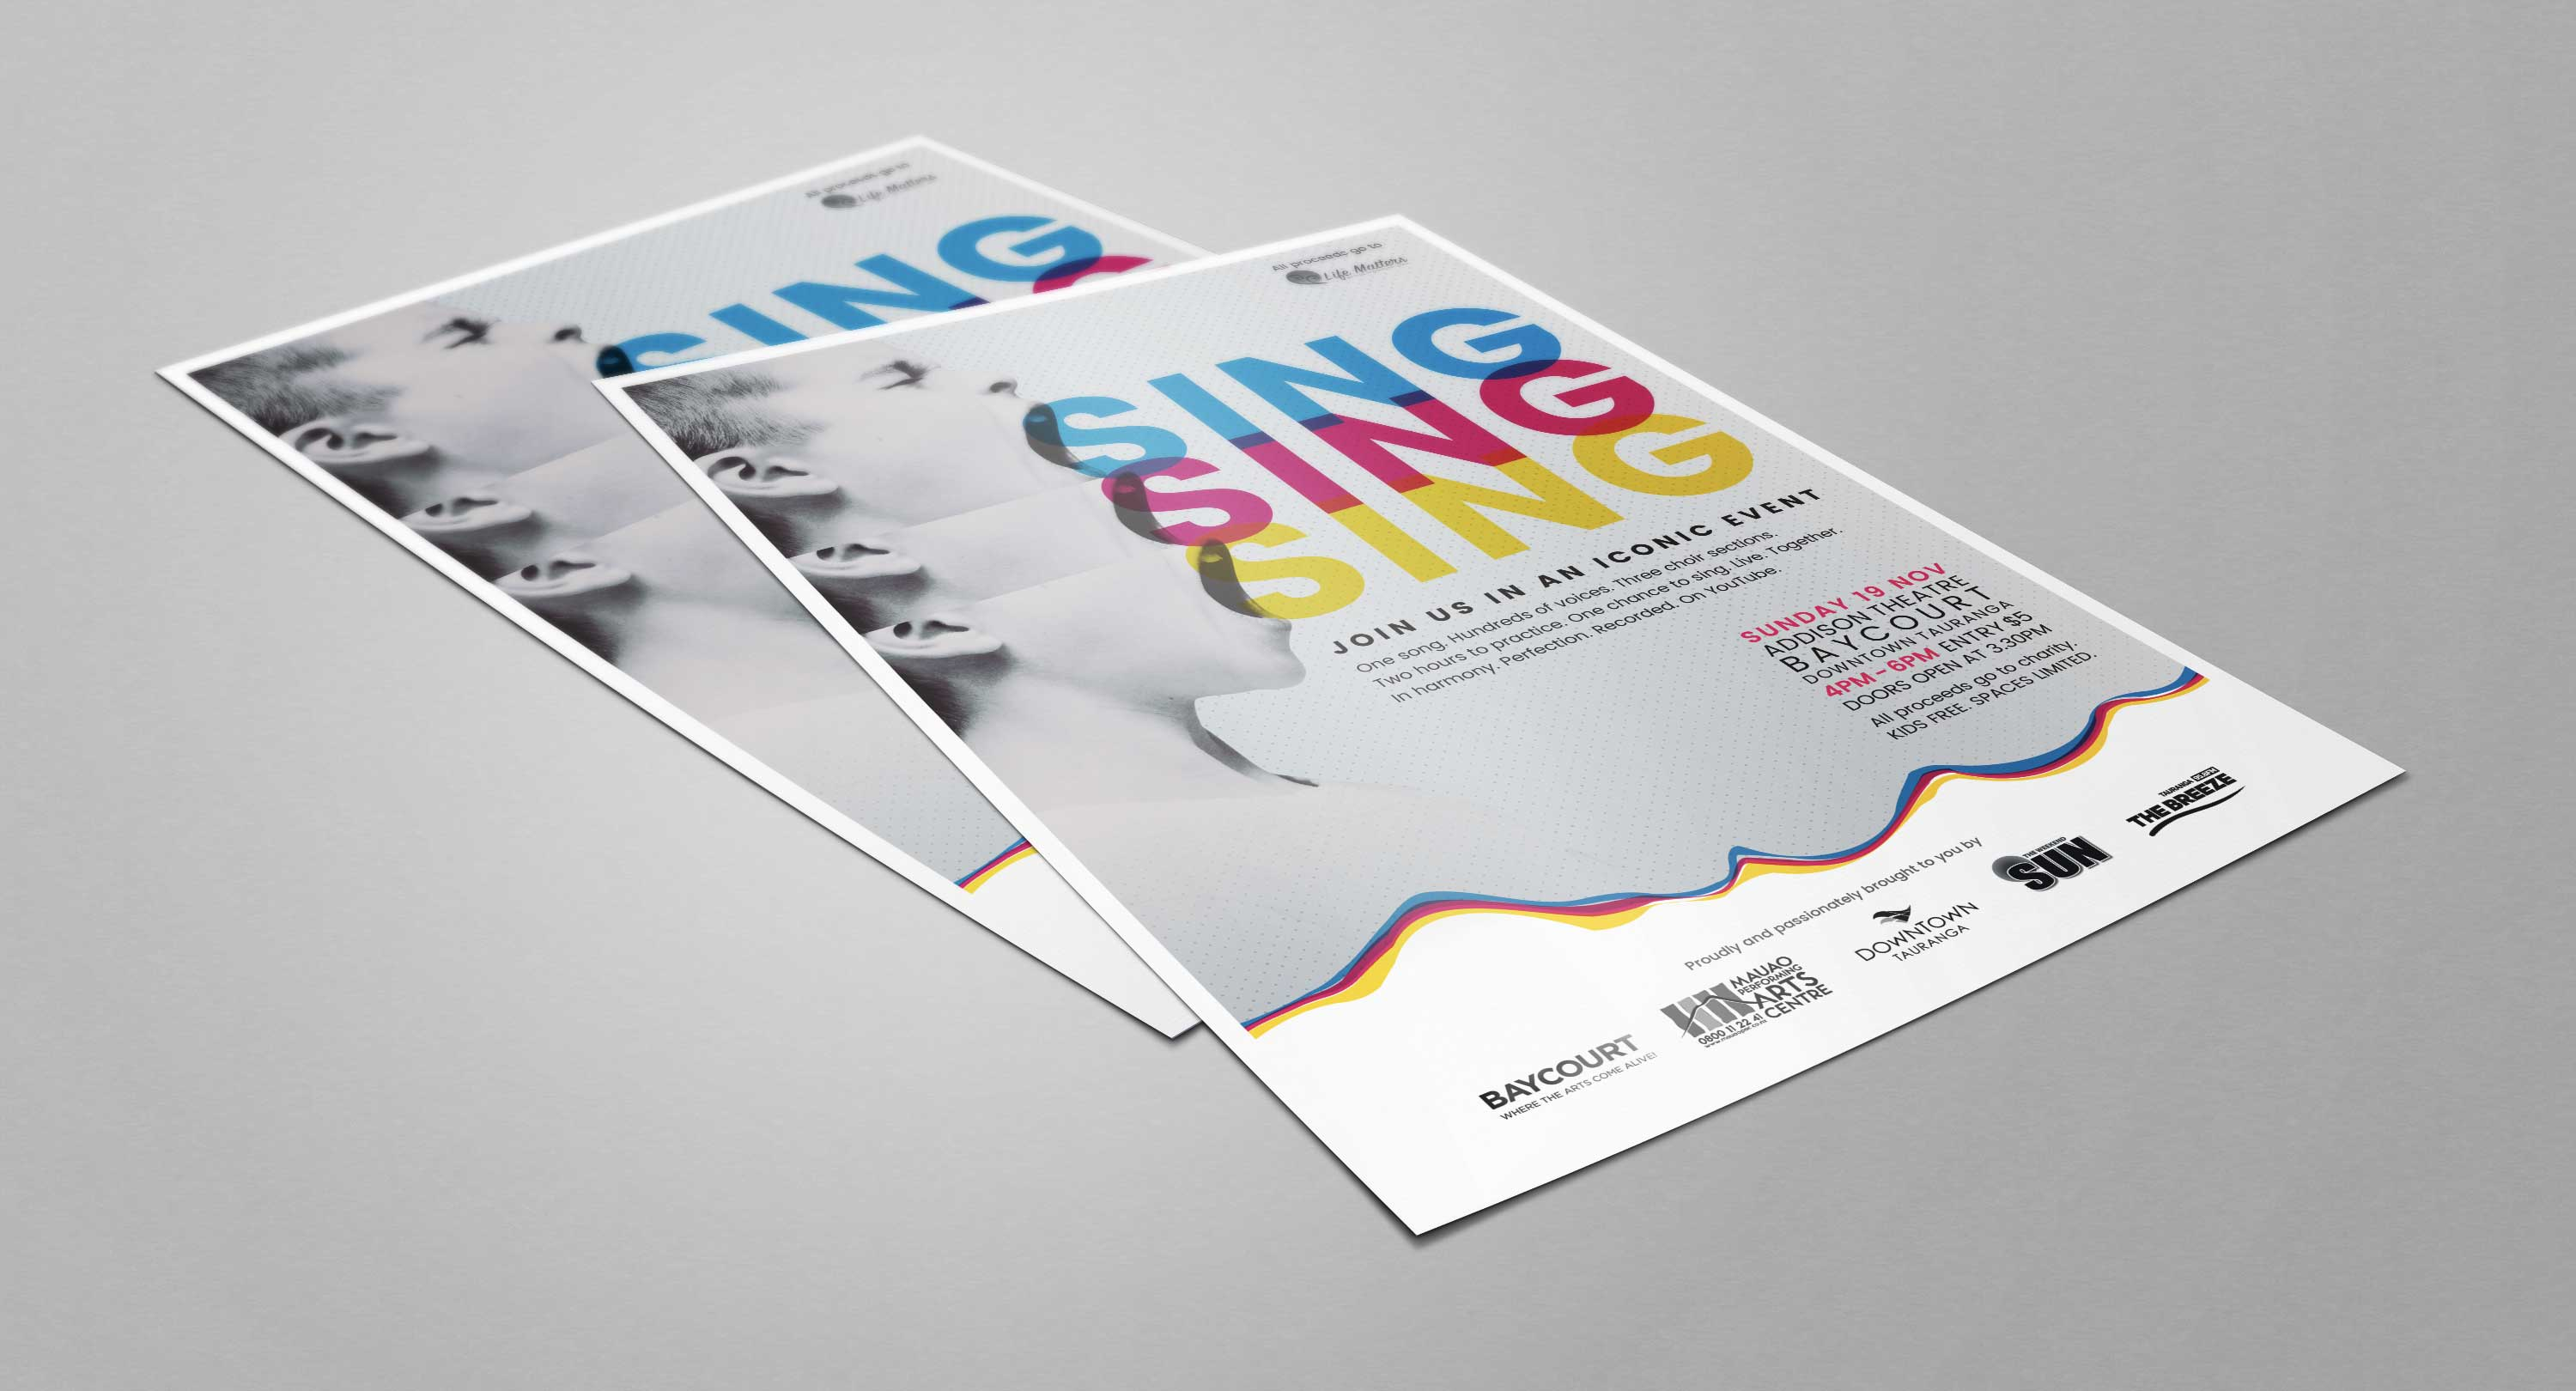 A selection of the design collateral we put together for the event